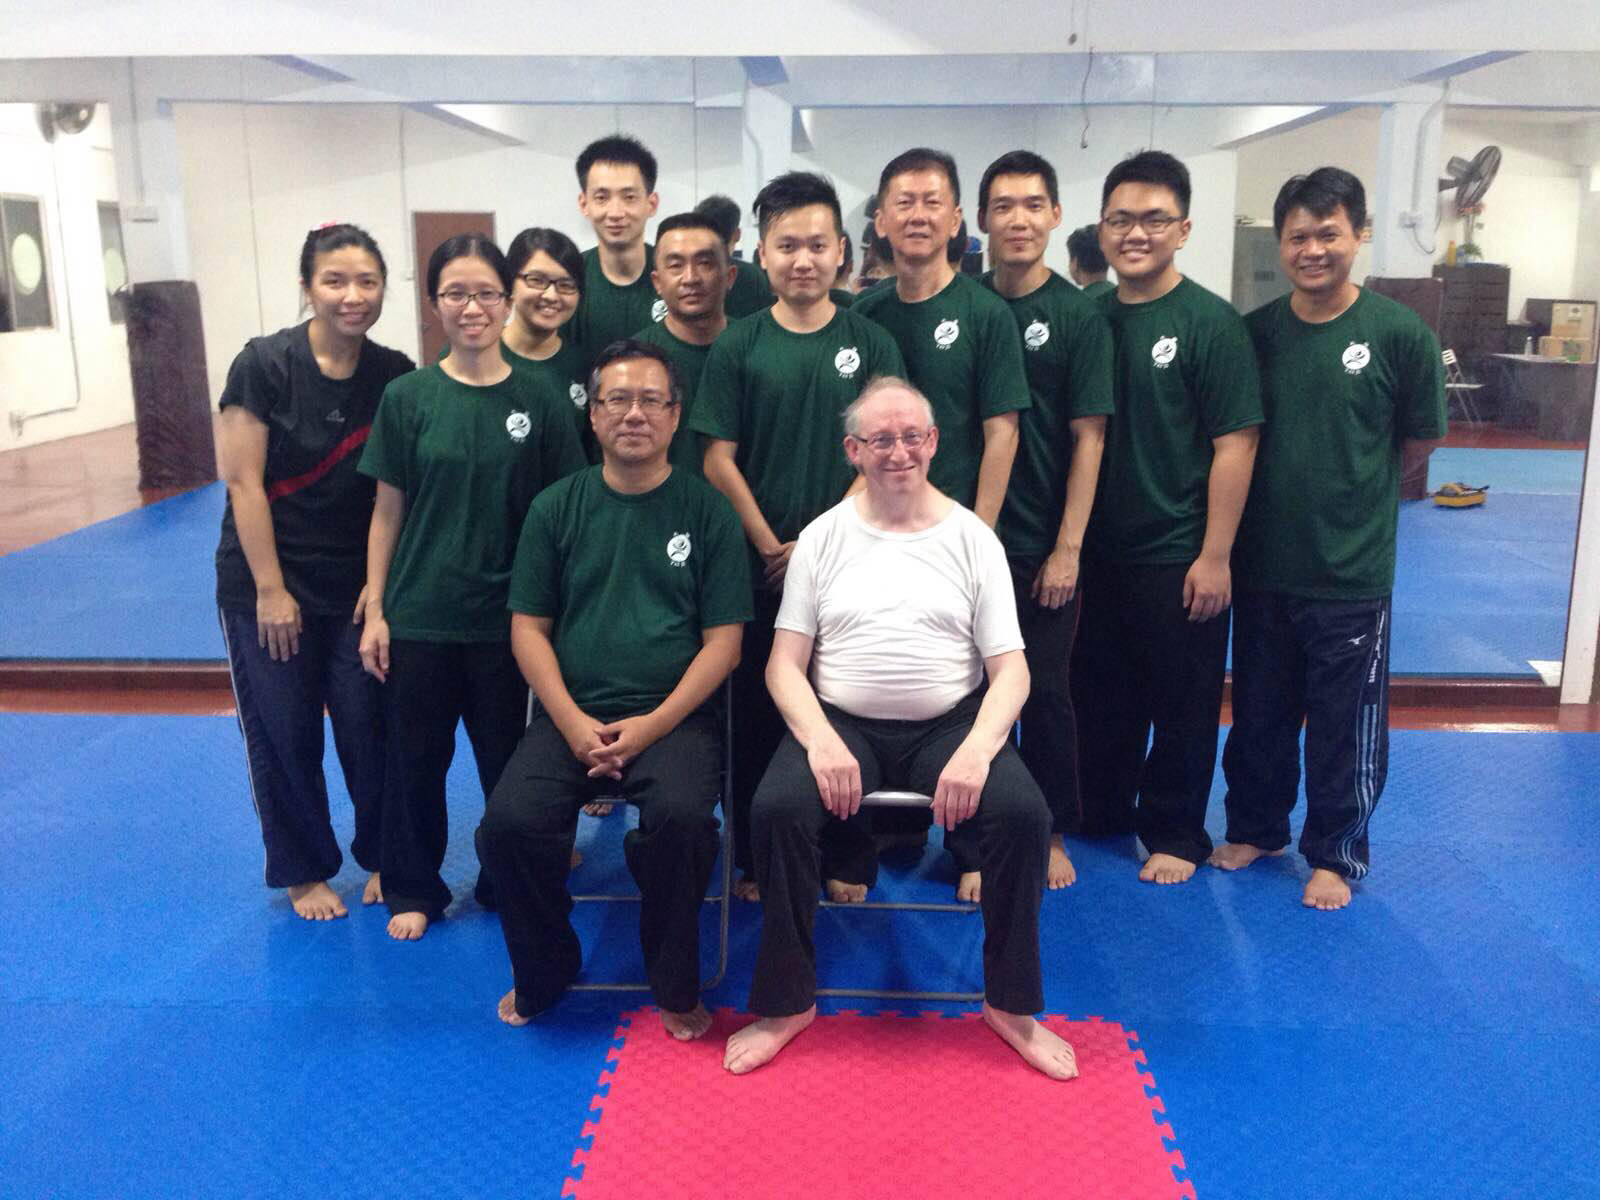 Group Photo at Dr Tim Song's Tai Chi school